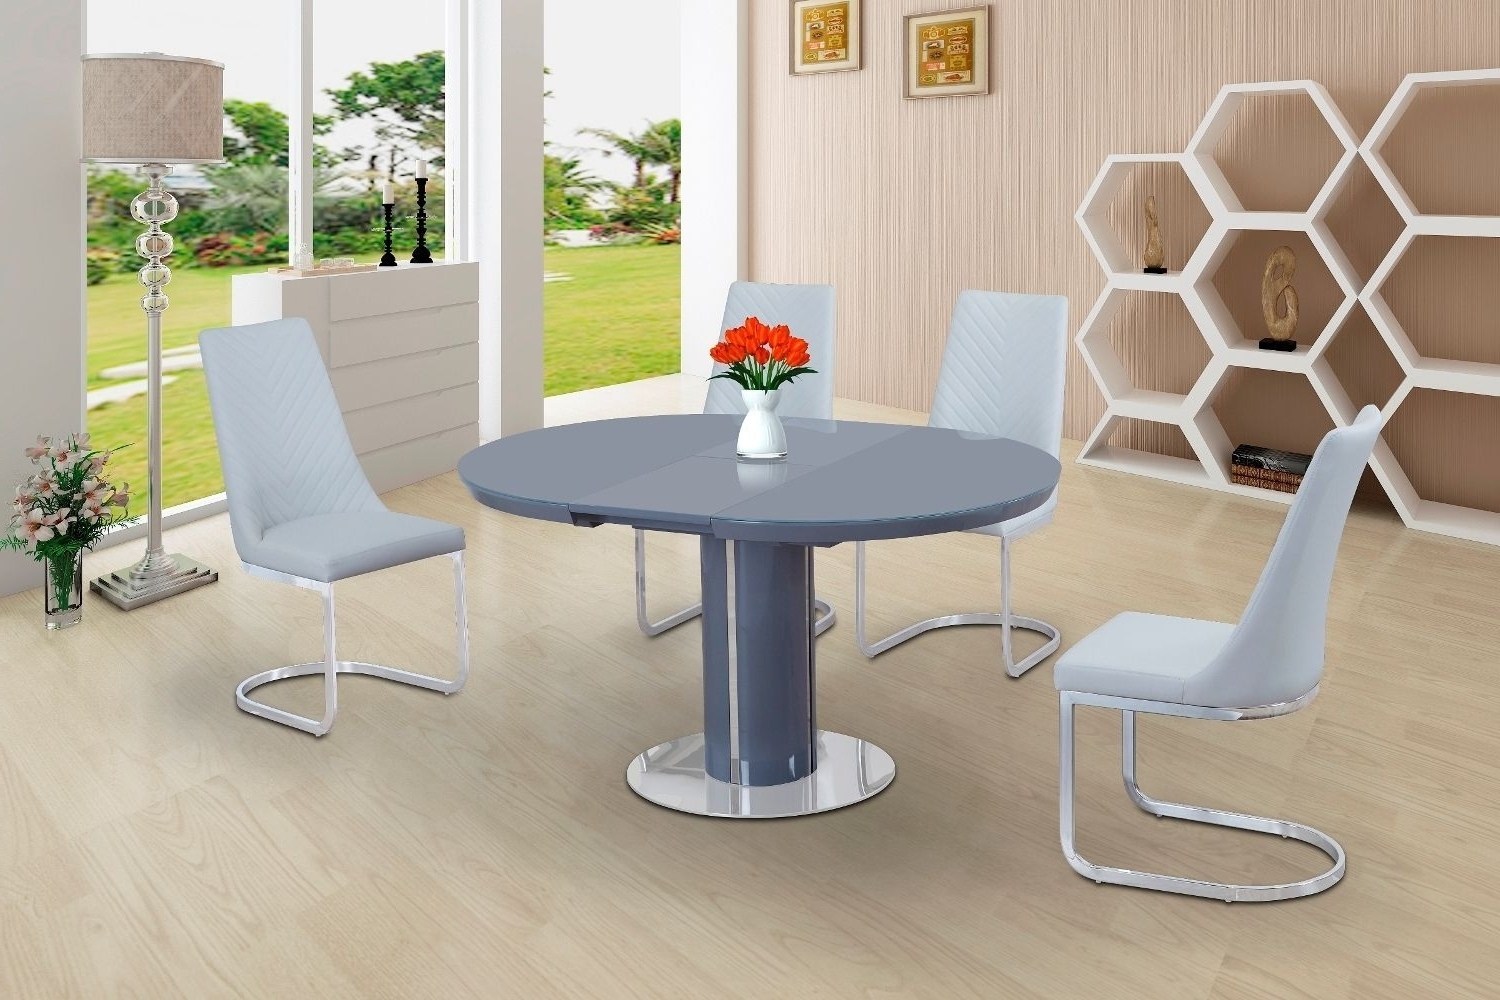 Eclipse Round Oval Gloss & Glass Extending 110 To 145 Cm Dining for Well-known Gloss Dining Tables Sets